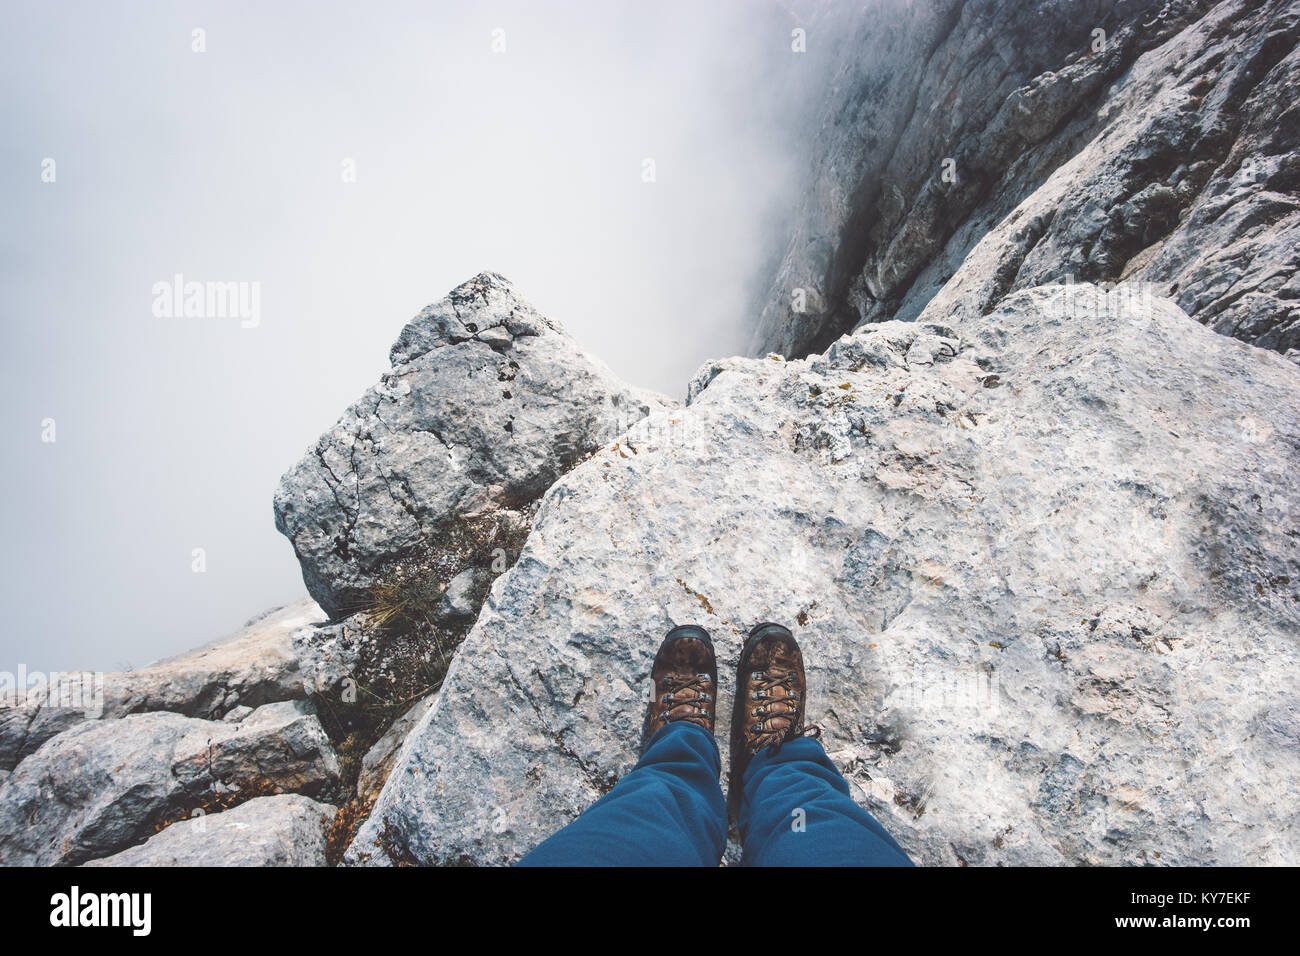 Traveler Feet boots on rocky mountain cliff over foggy clouds Travel Lifestyle success concept adventure active - Stock Image